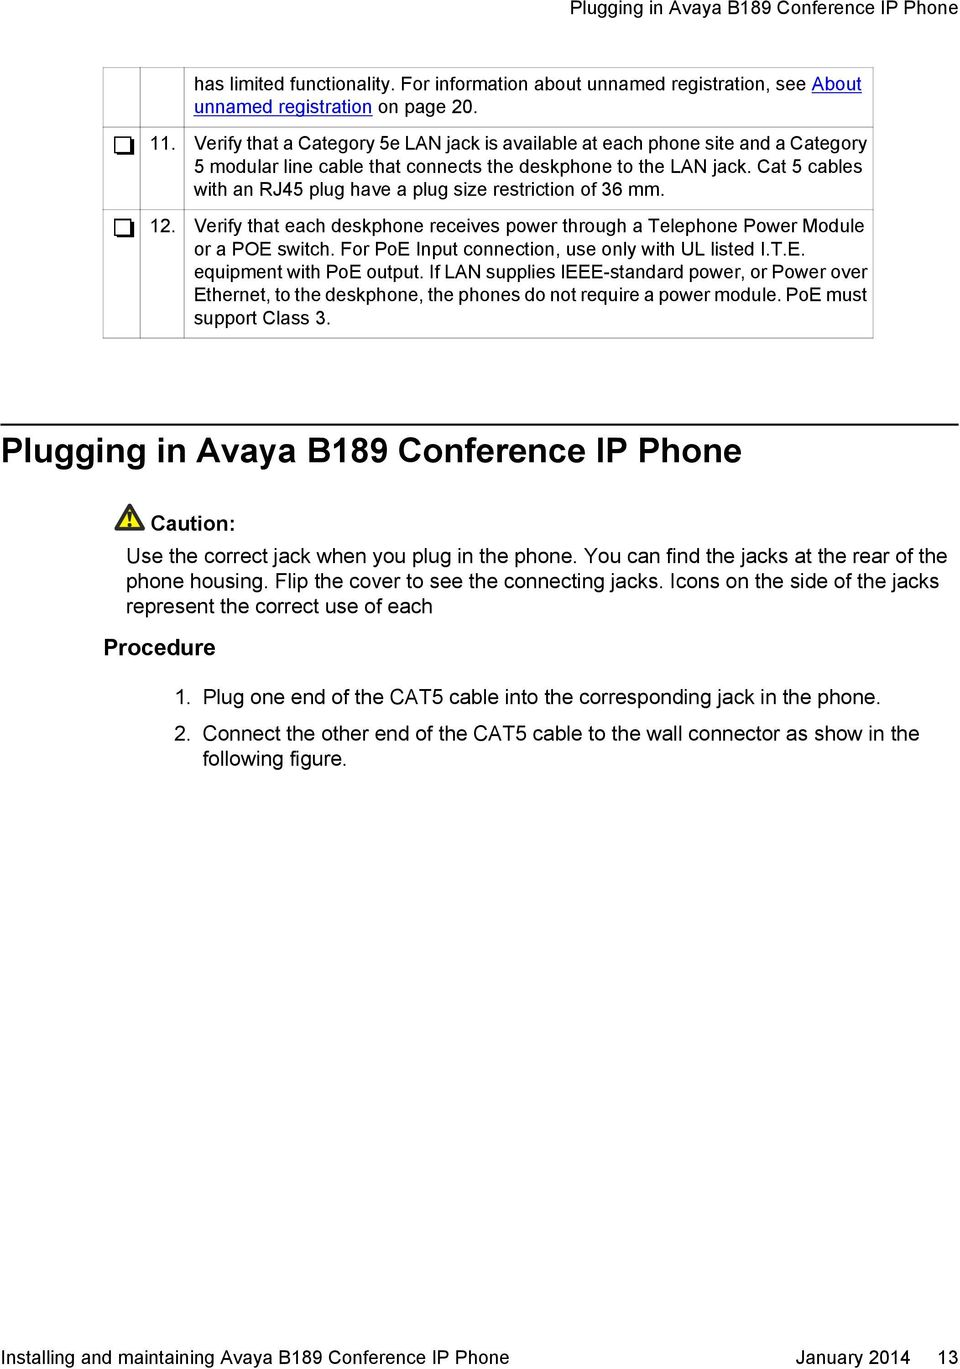 installing and maintaining avaya b189 conference ip phone pdf cat 5 cables an rj45 plug have a plug size restriction of 36 mm